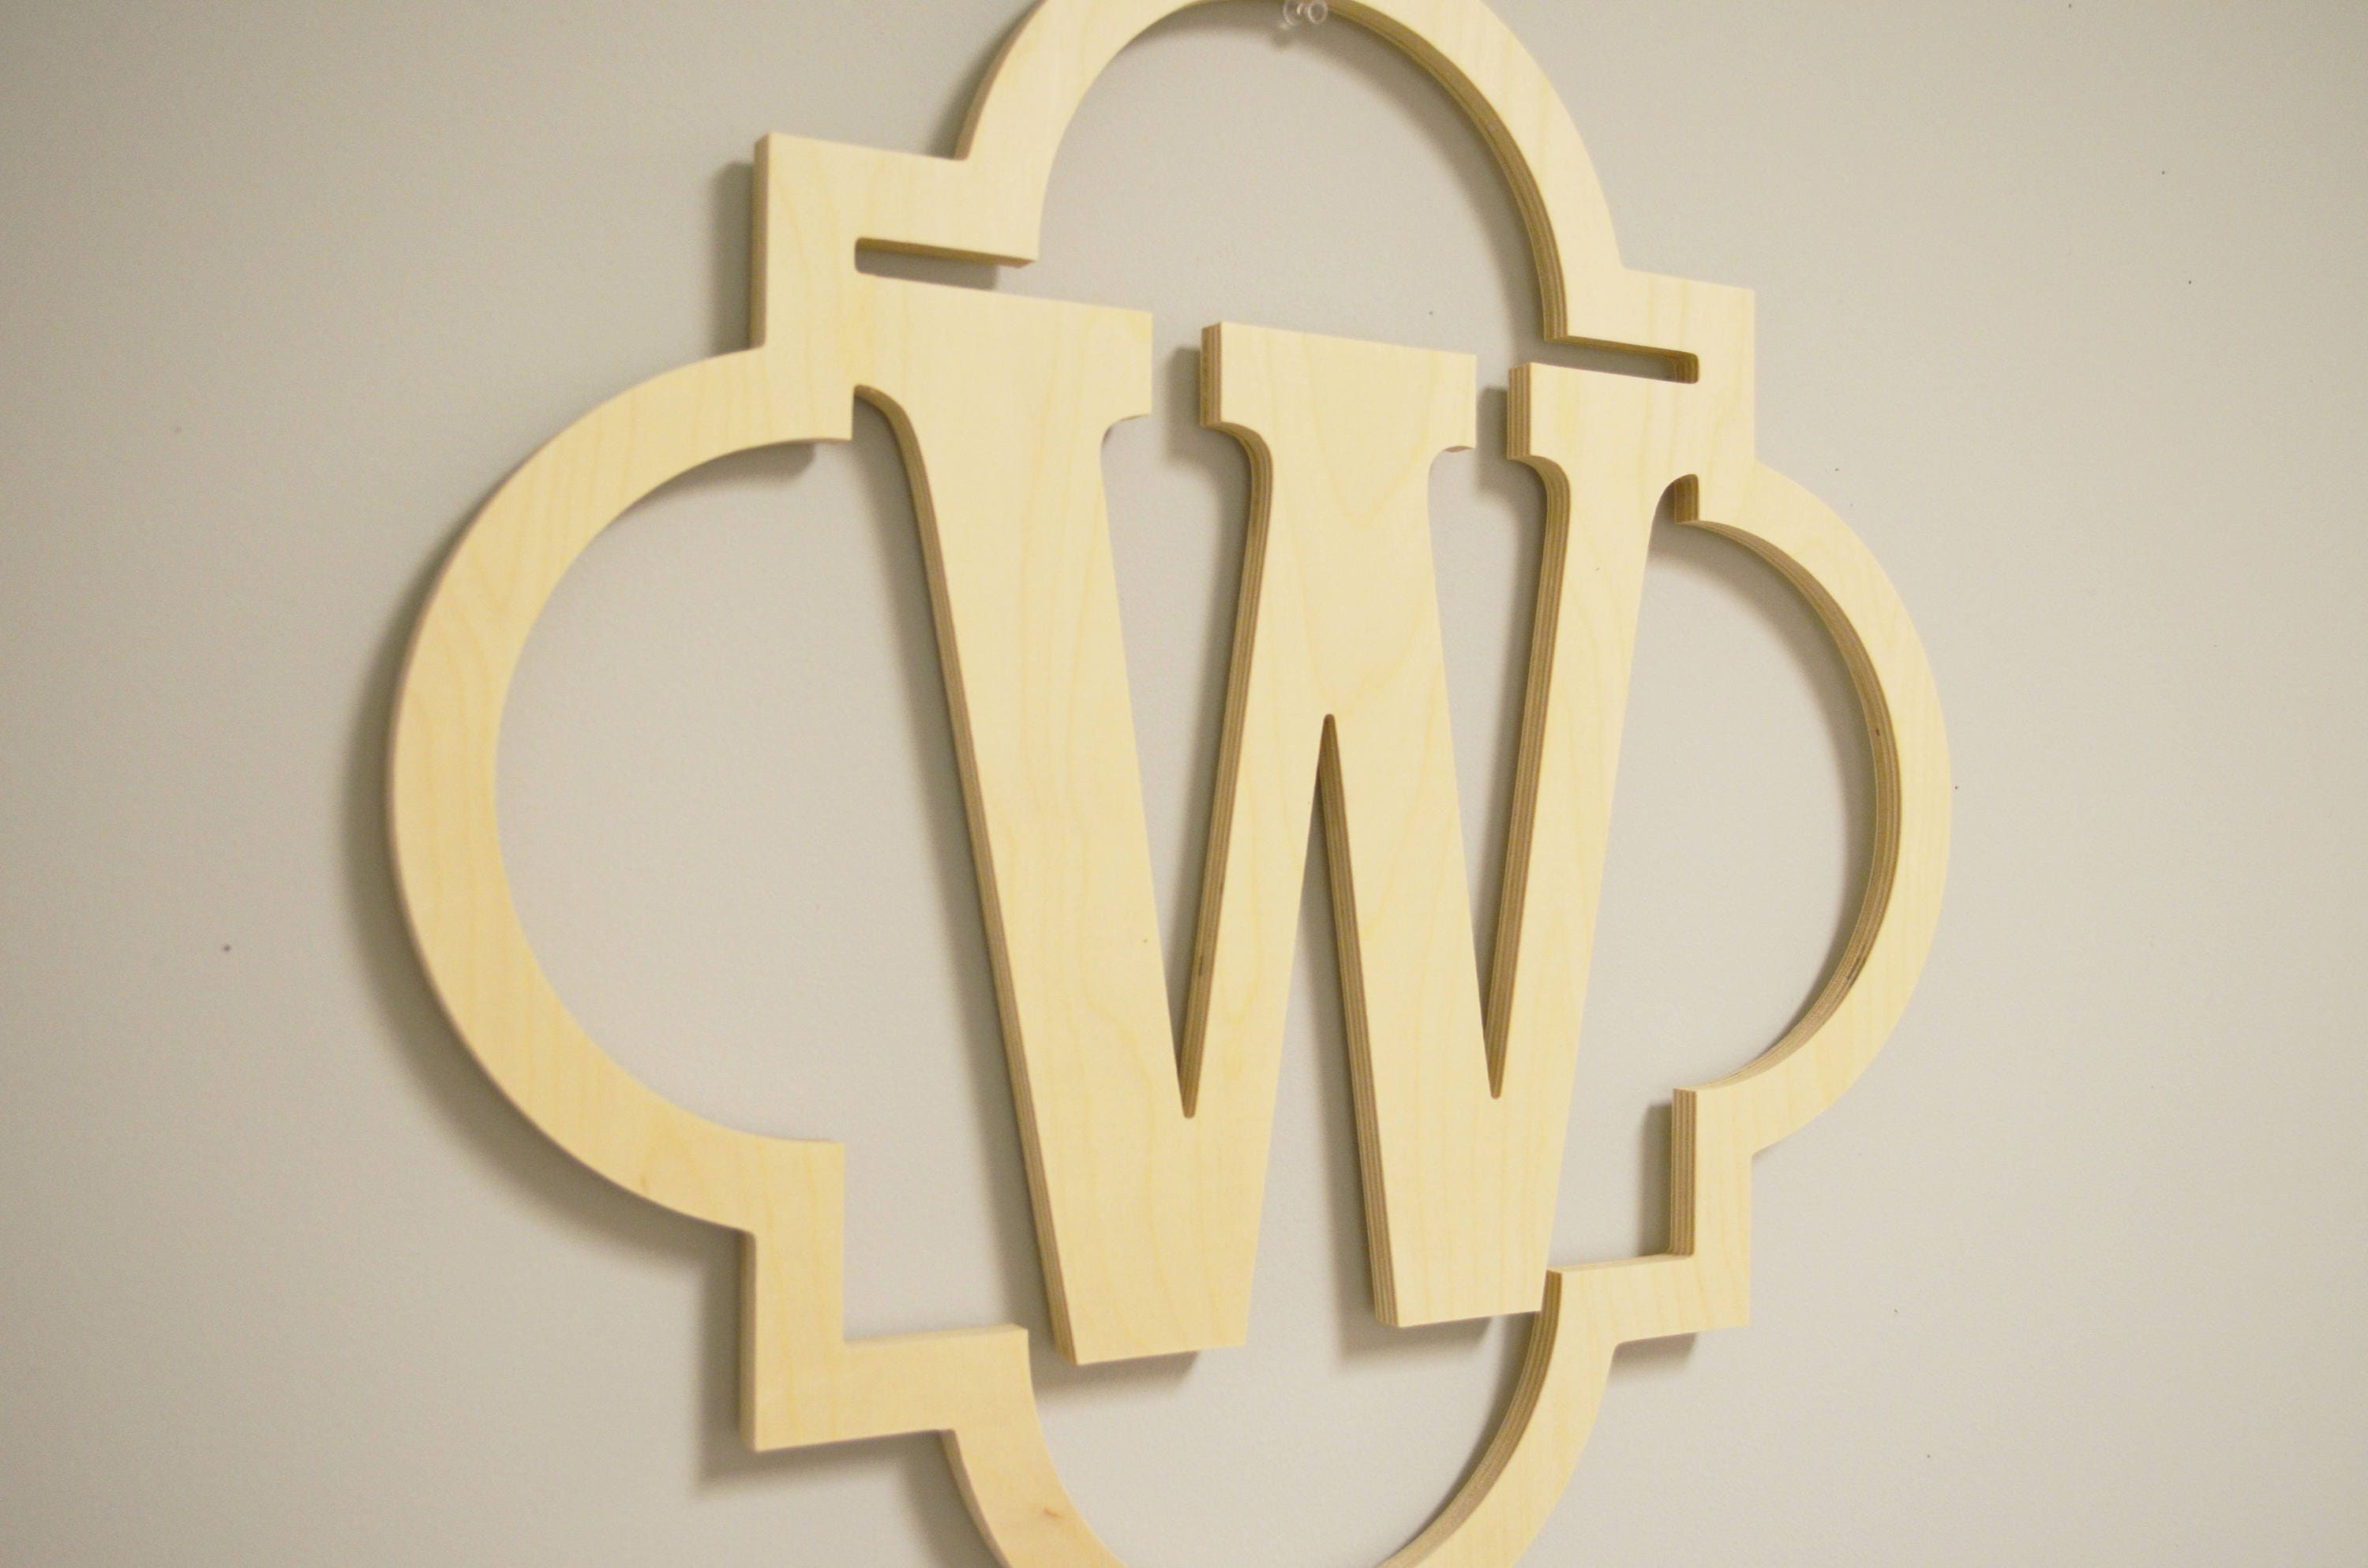 Cool Wood Letter Wall Decor Contemporary - The Wall Art Decorations ...